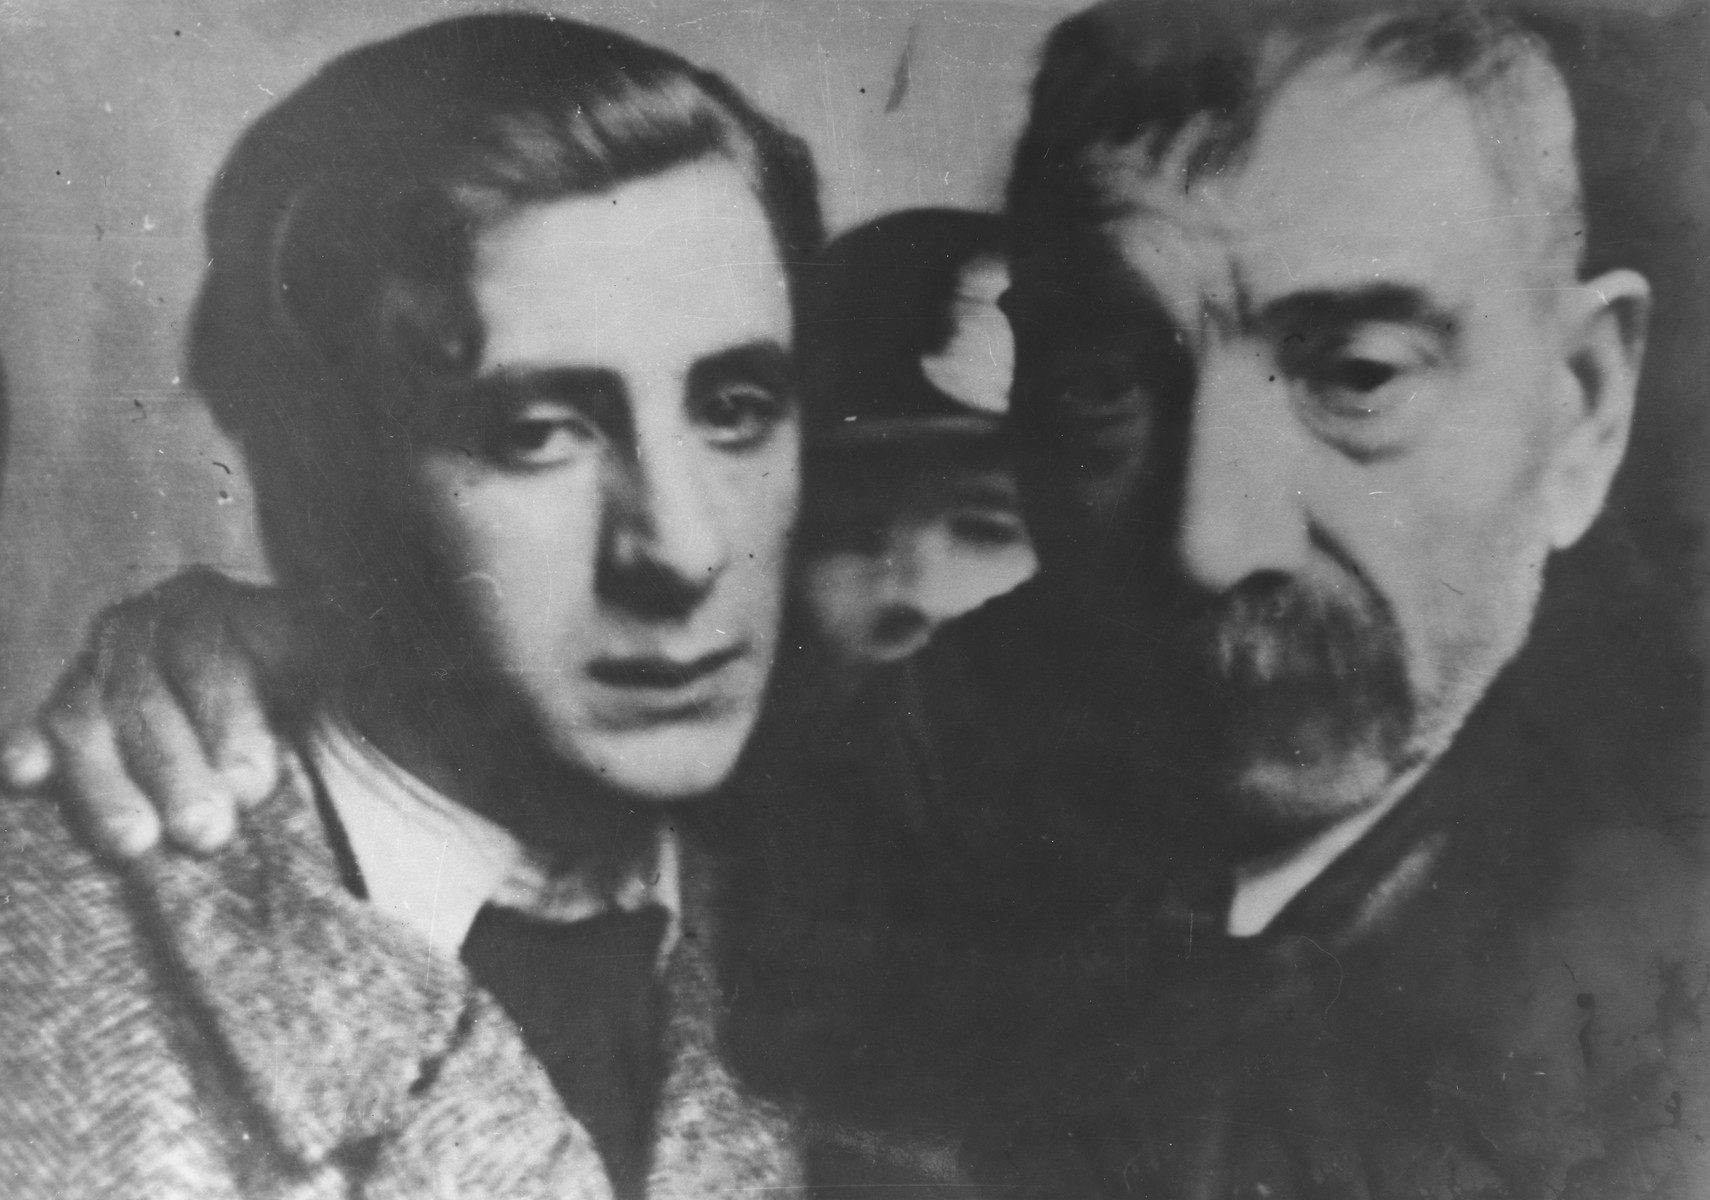 Yugoslav partisan Stevan Kojic poses with his father at their final meeting before his execution for involvement in the resistance.